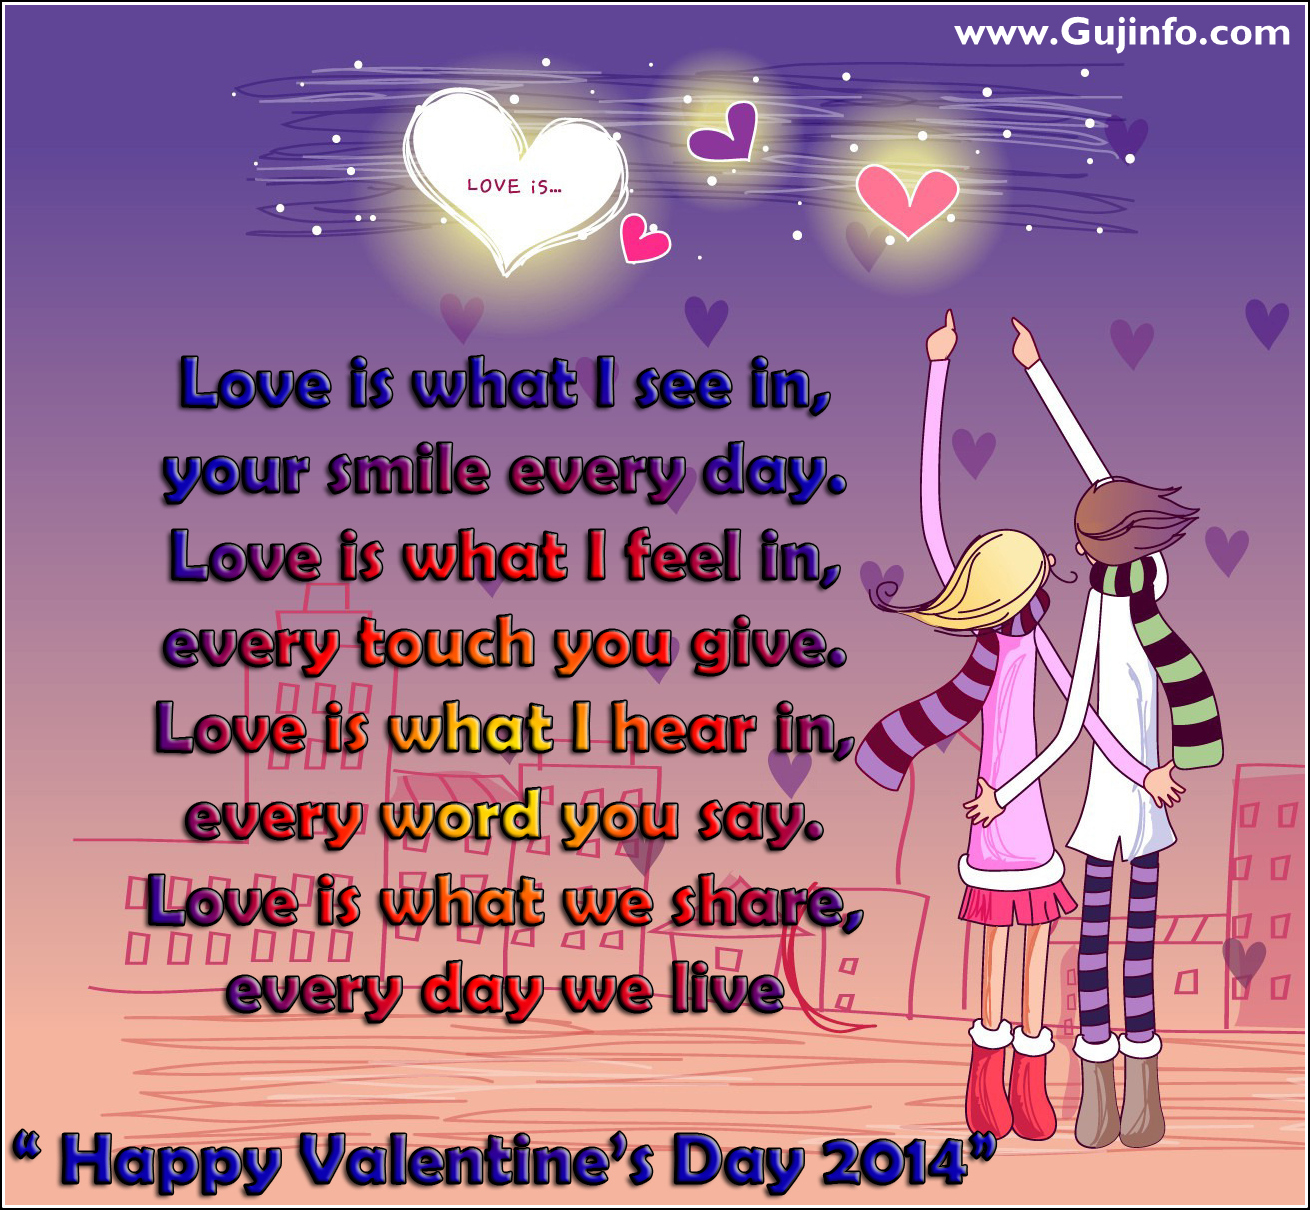 Happy Valentines Day SMS 2014 Wallpaper Cards Whatsapp Messages Video – Valentine Day Video Card